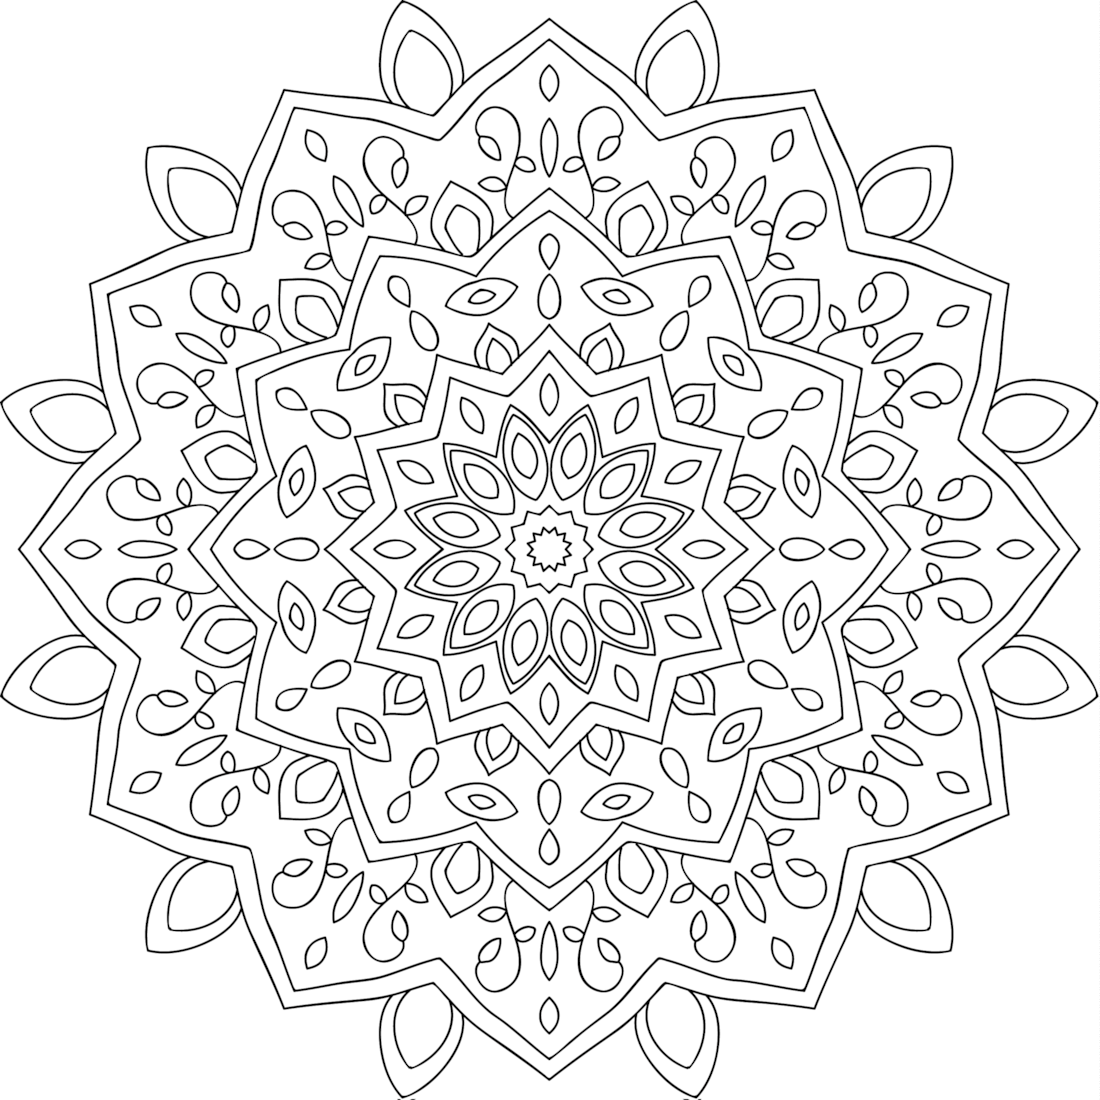 picture of helping hands coloring page - Helping Hands Coloring Page